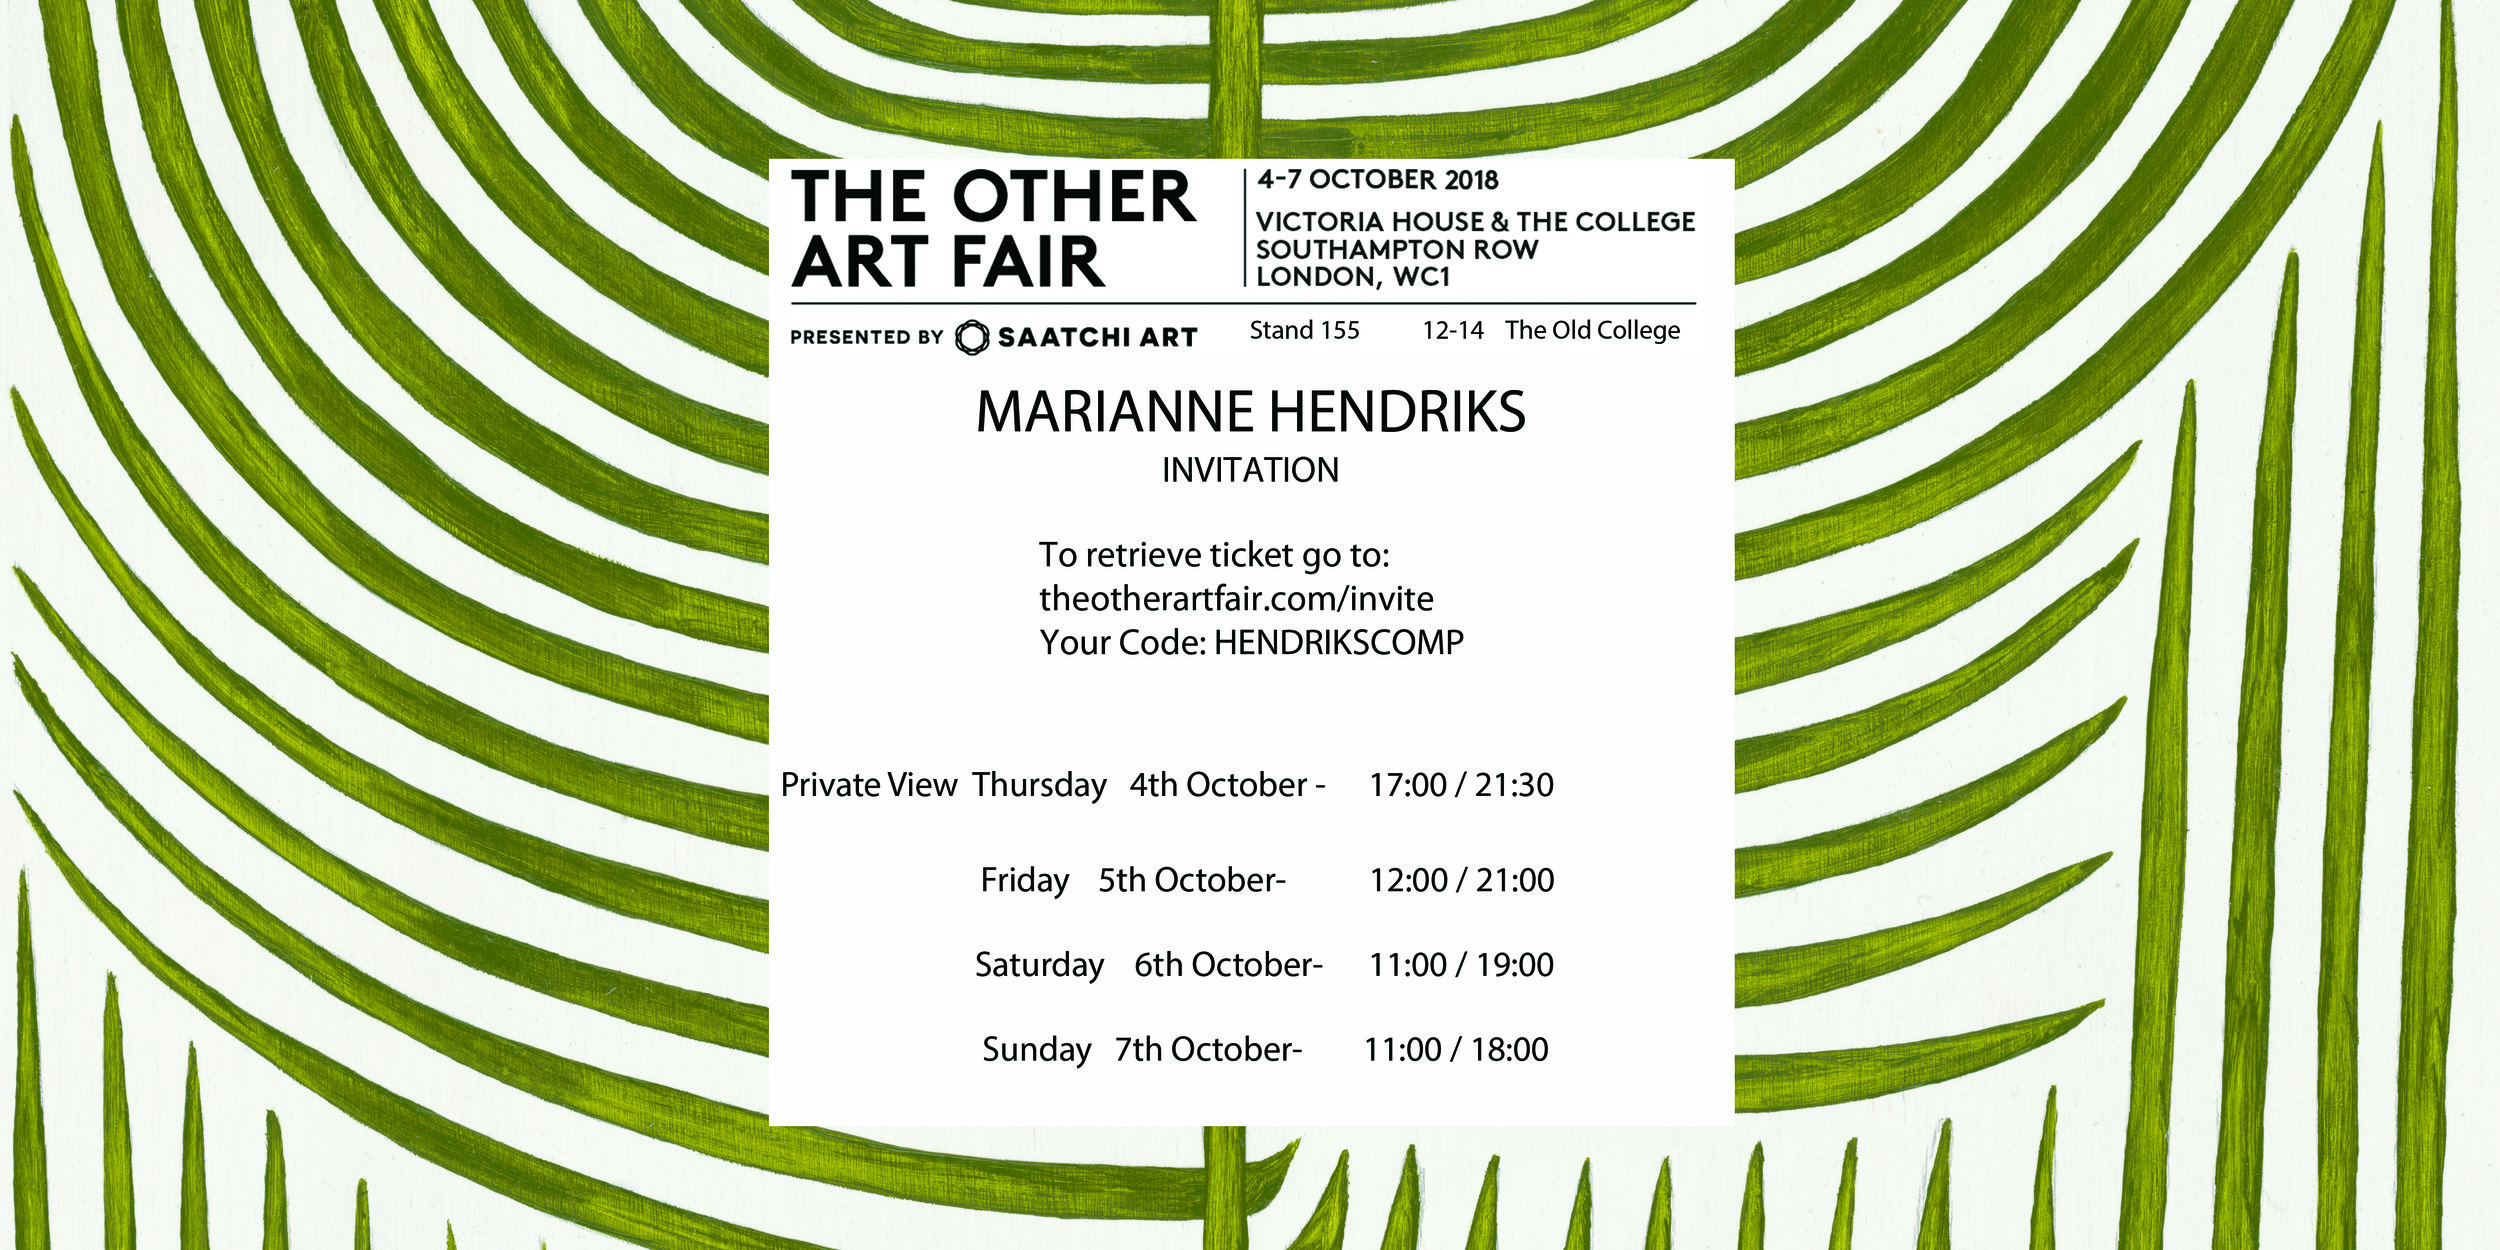 Invite Mail London - The Other Art Fair.jpg